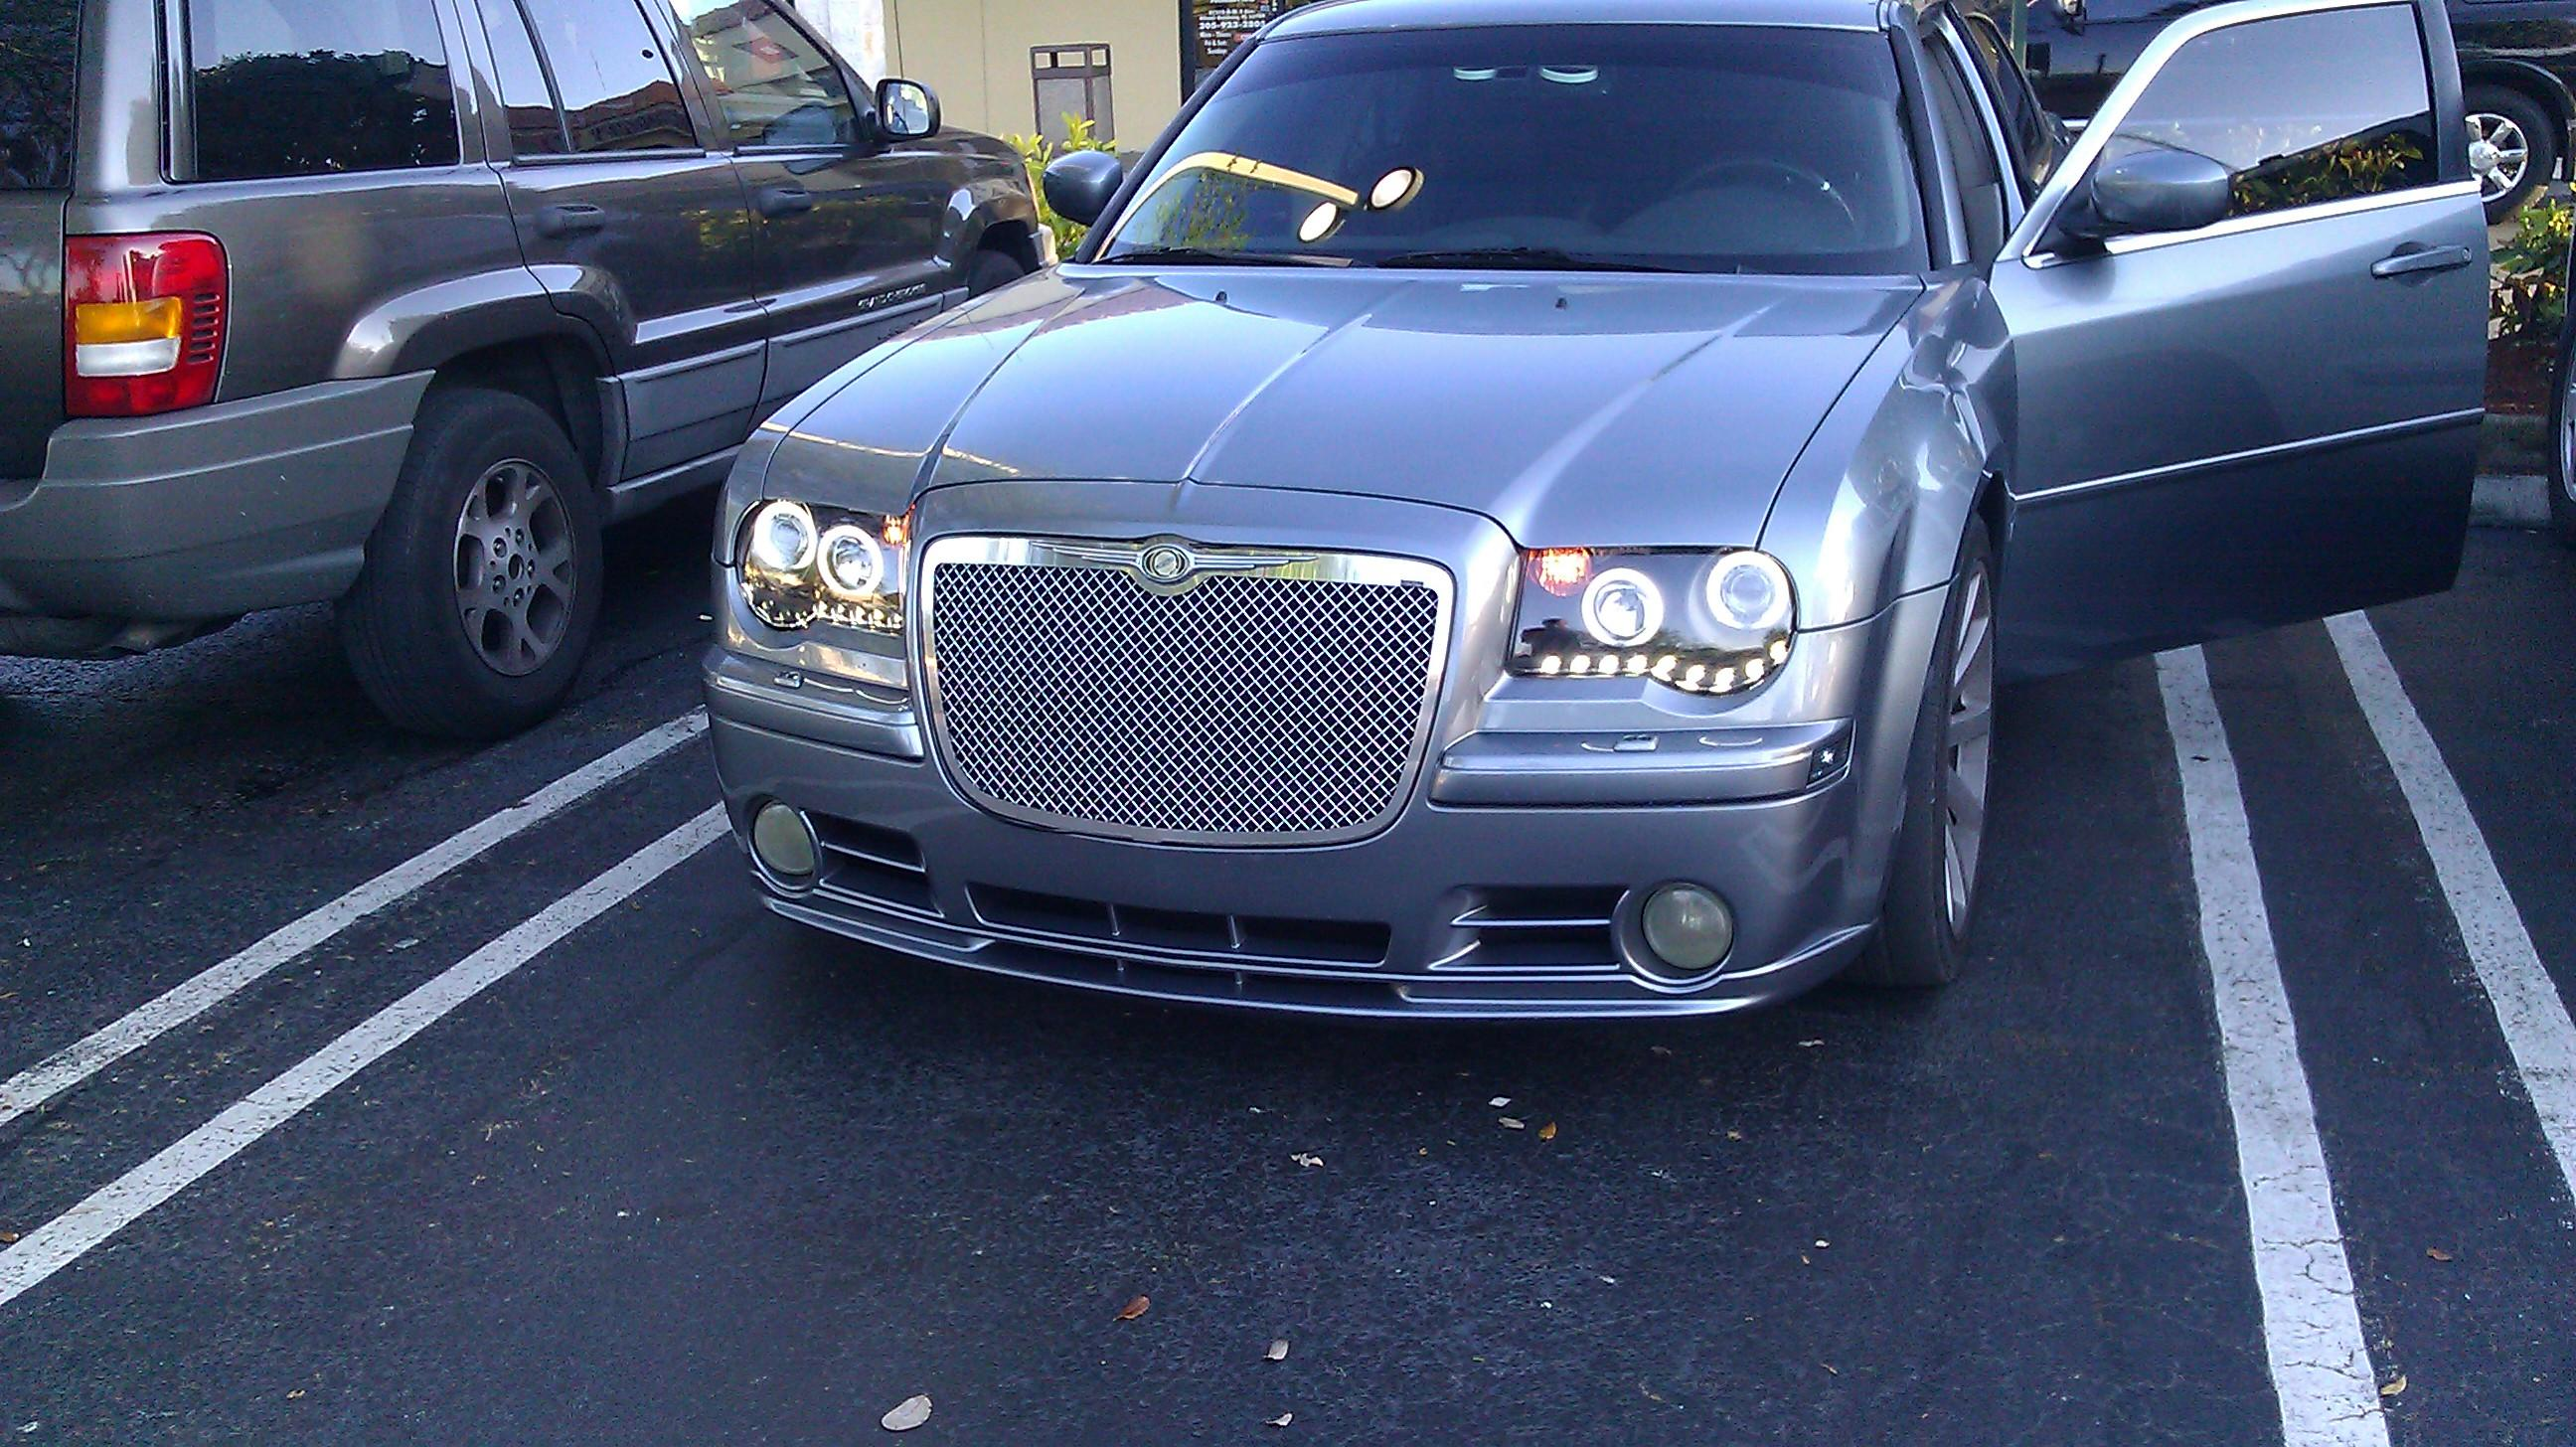 Another Pharaoh305 2006 Chrysler 300 post... - 15352764